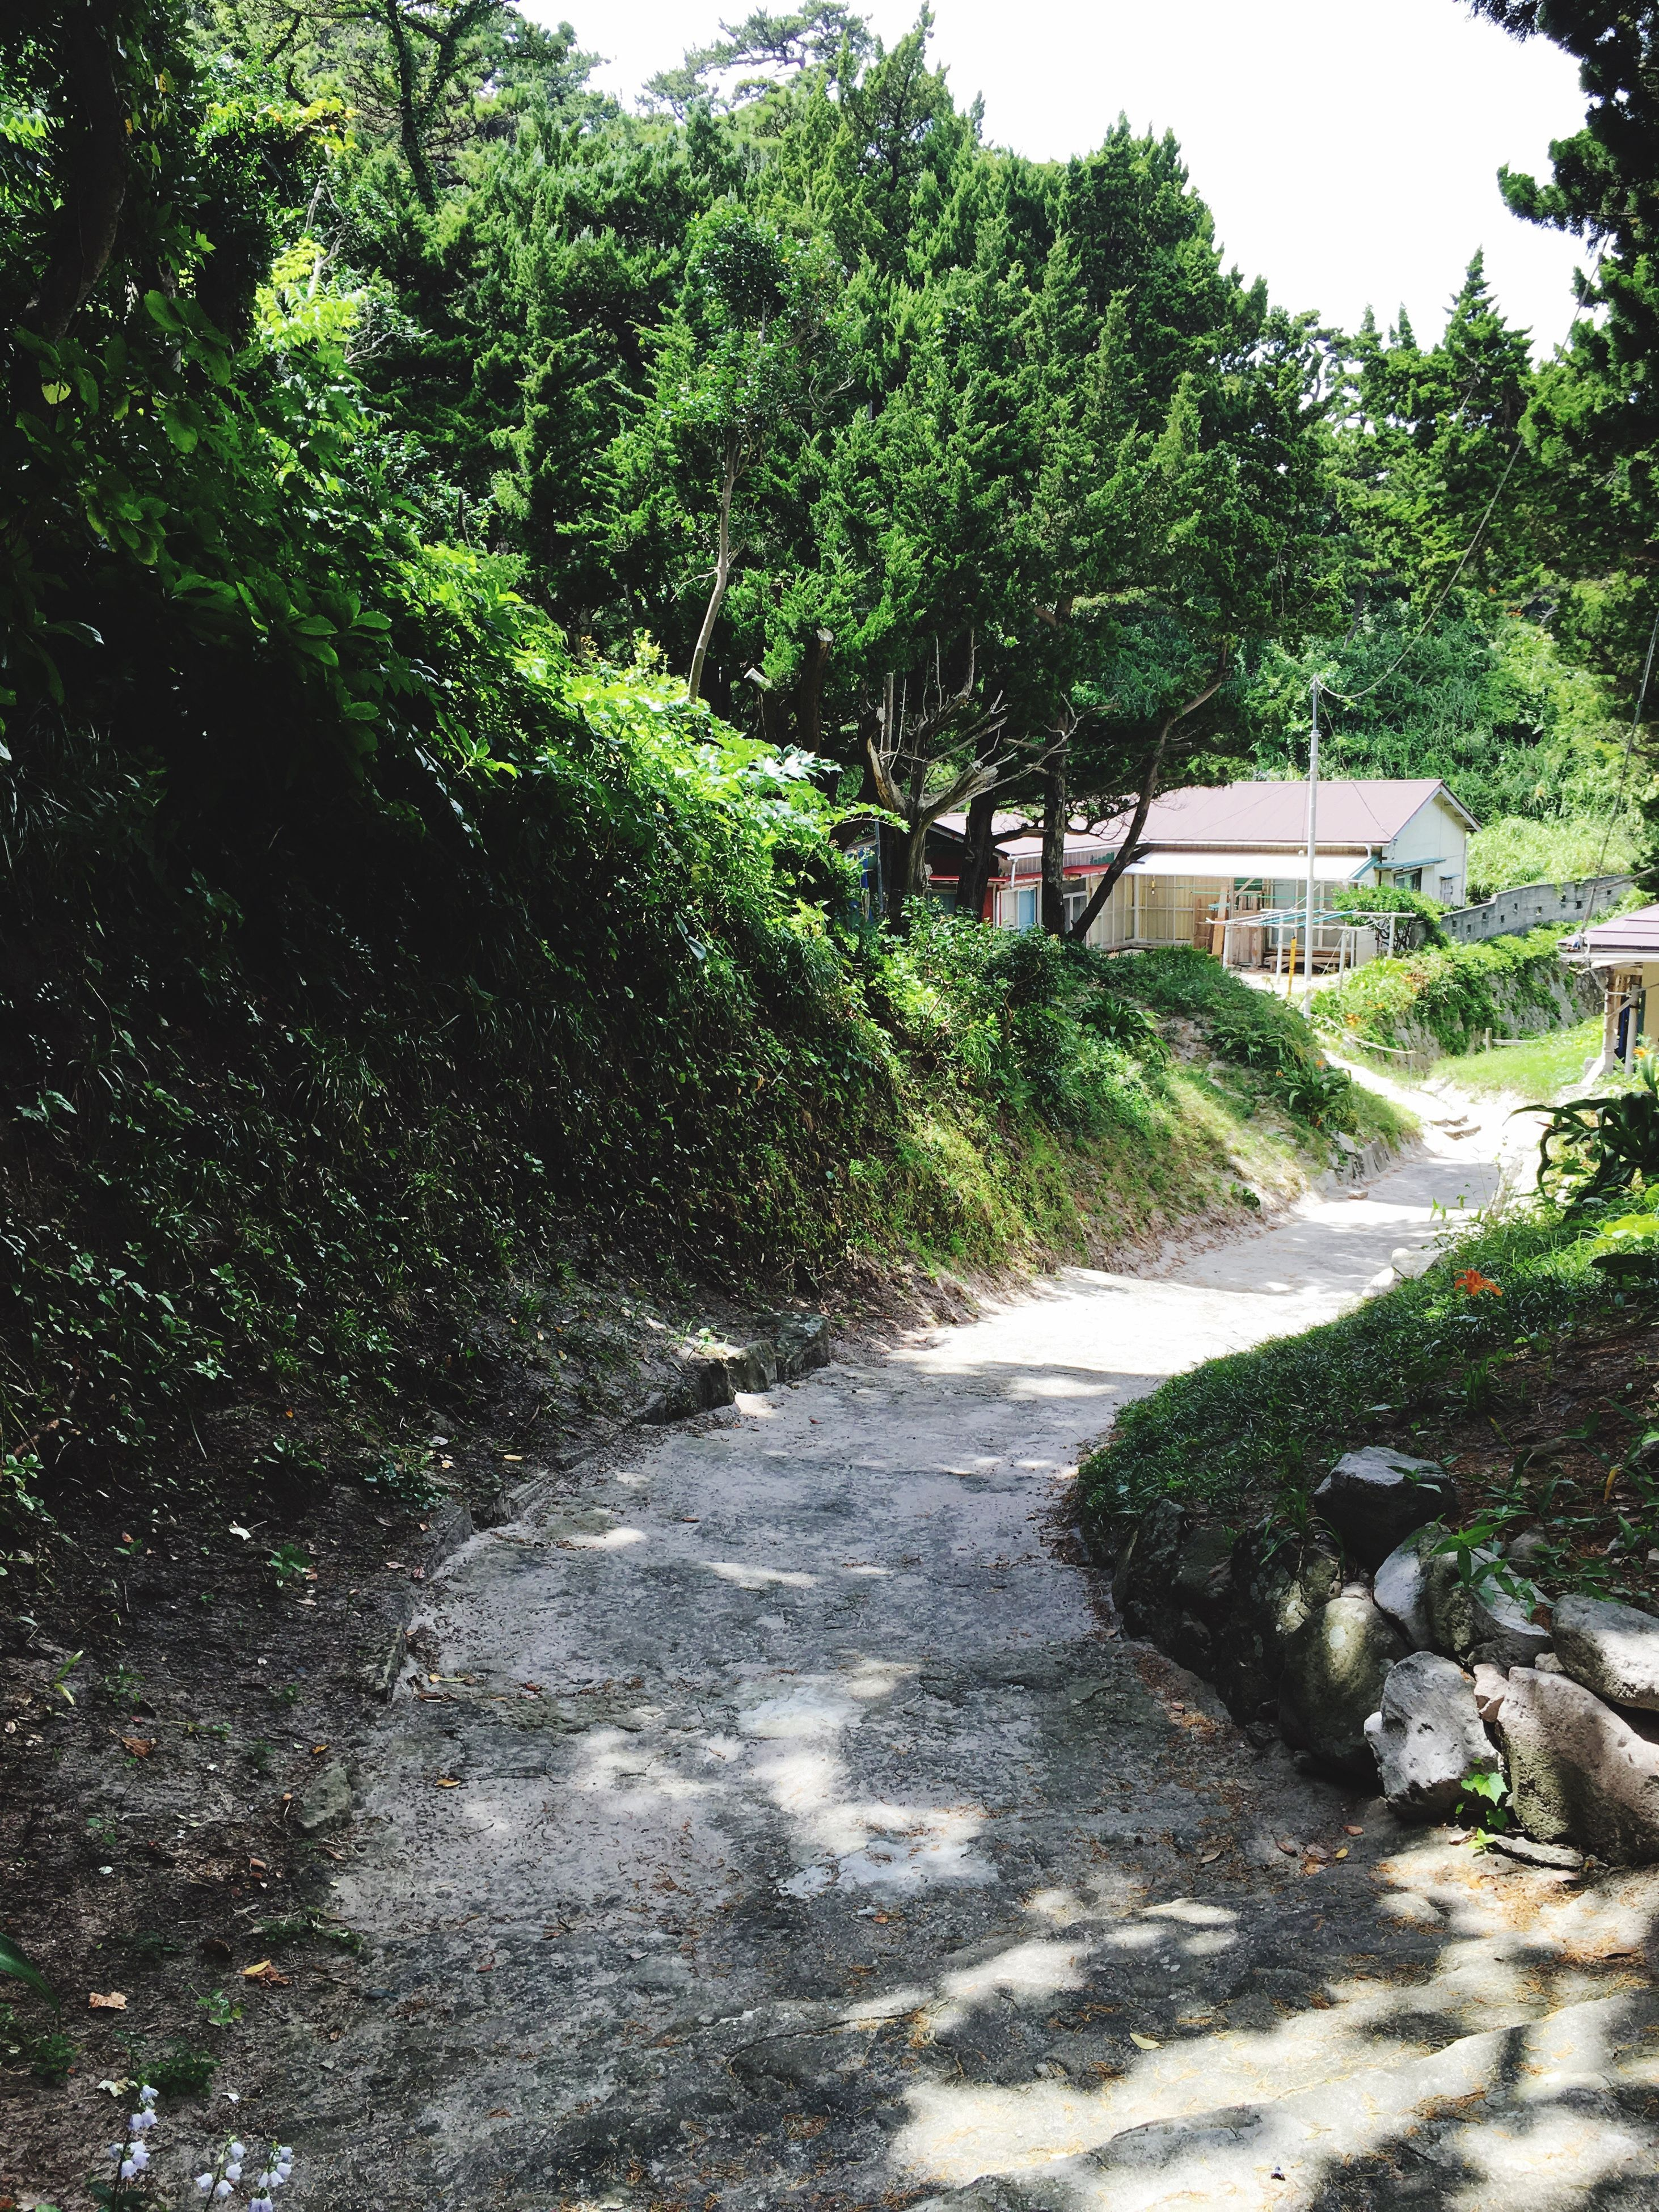 tree, growth, green color, nature, the way forward, tranquility, tranquil scene, beauty in nature, plant, scenics, day, outdoors, footpath, lush foliage, no people, non-urban scene, diminishing perspective, non urban scene, idyllic, landscape, flowing water, green, narrow, grass, remote, vanishing point